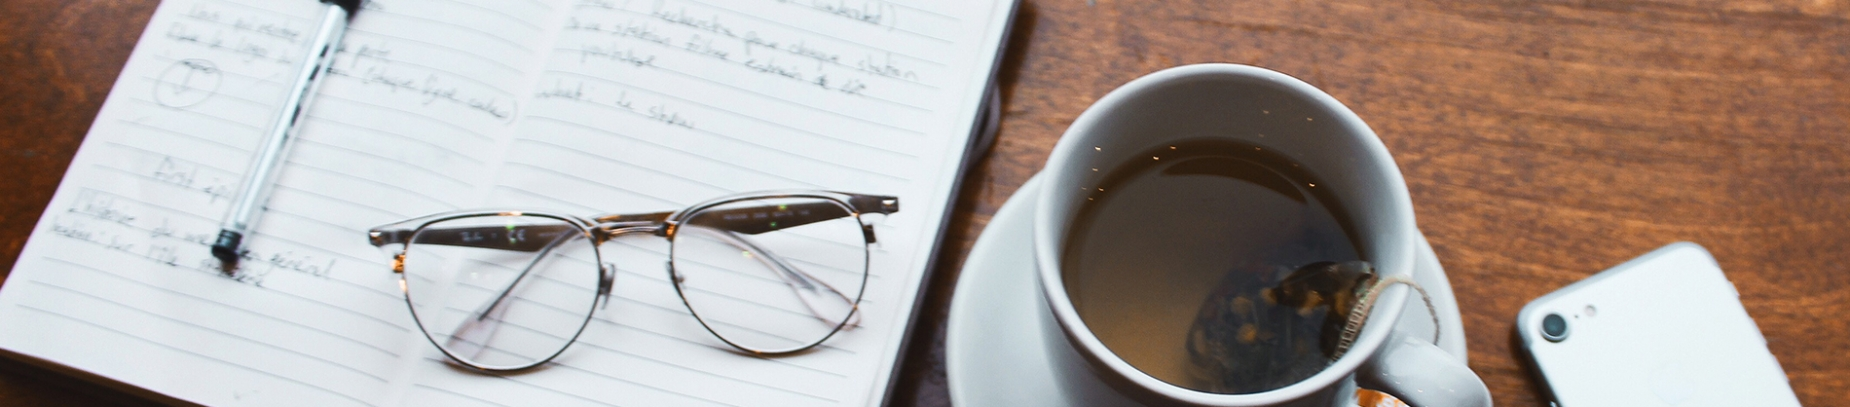 An open notebook and pen on a wooden table with a cup of tea, phone and glasses